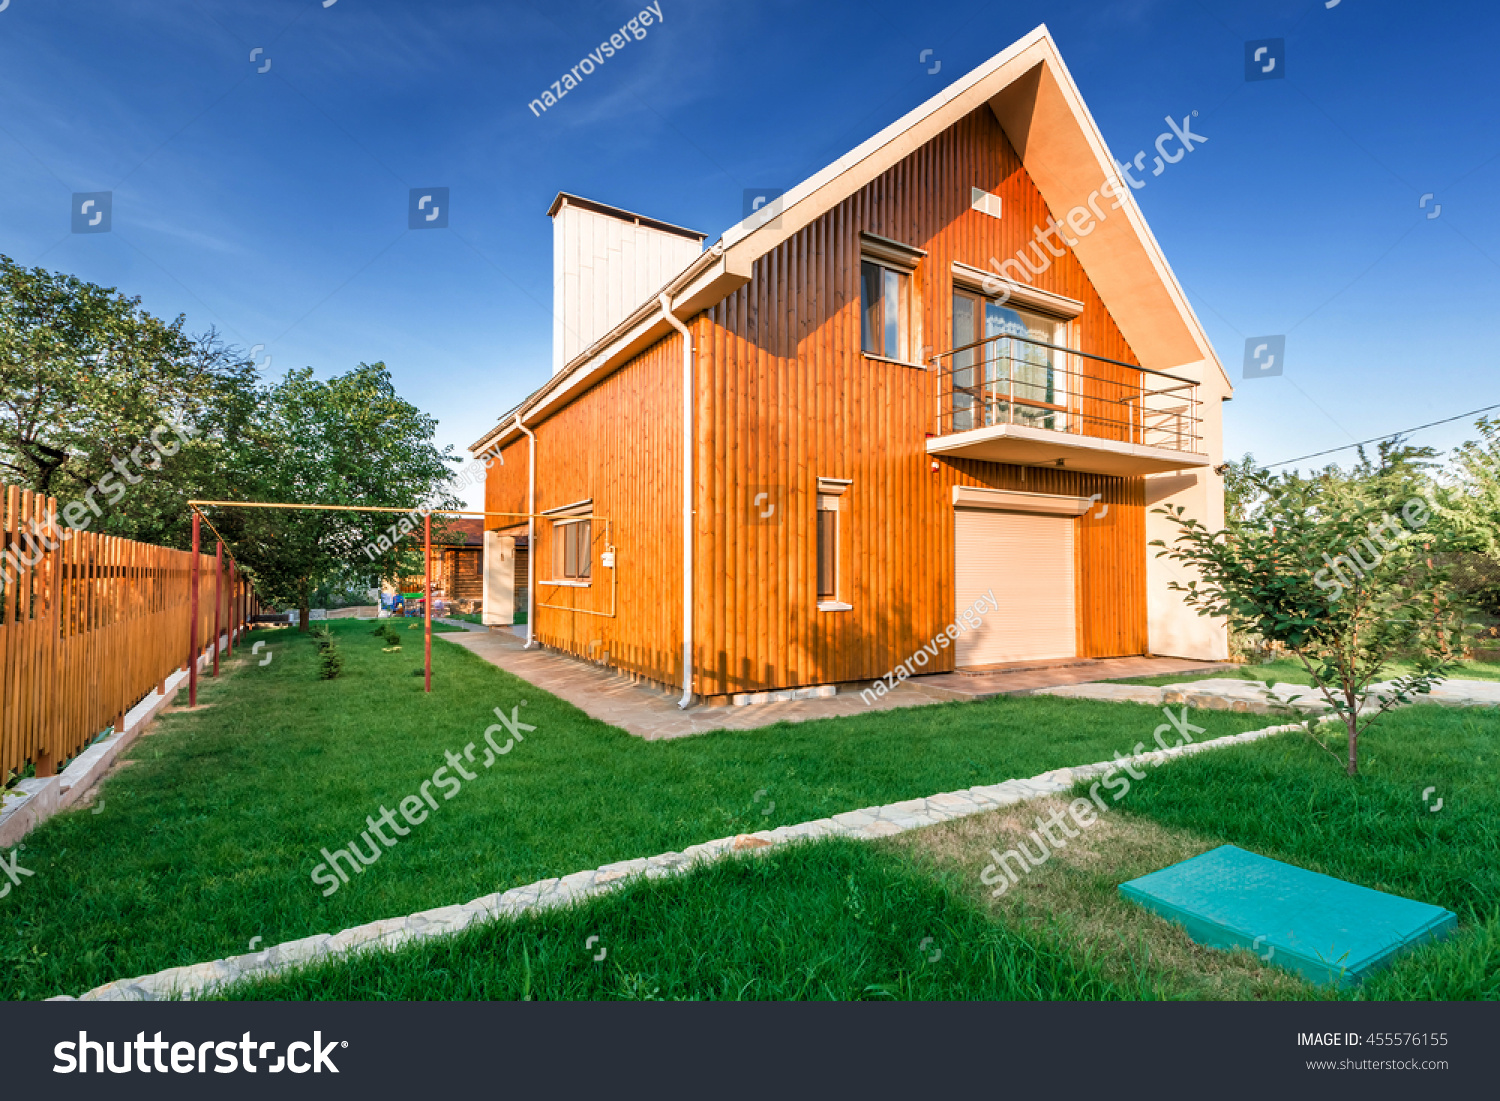 Wooden house meadow front stock photo 455576155 shutterstock for Meadow house